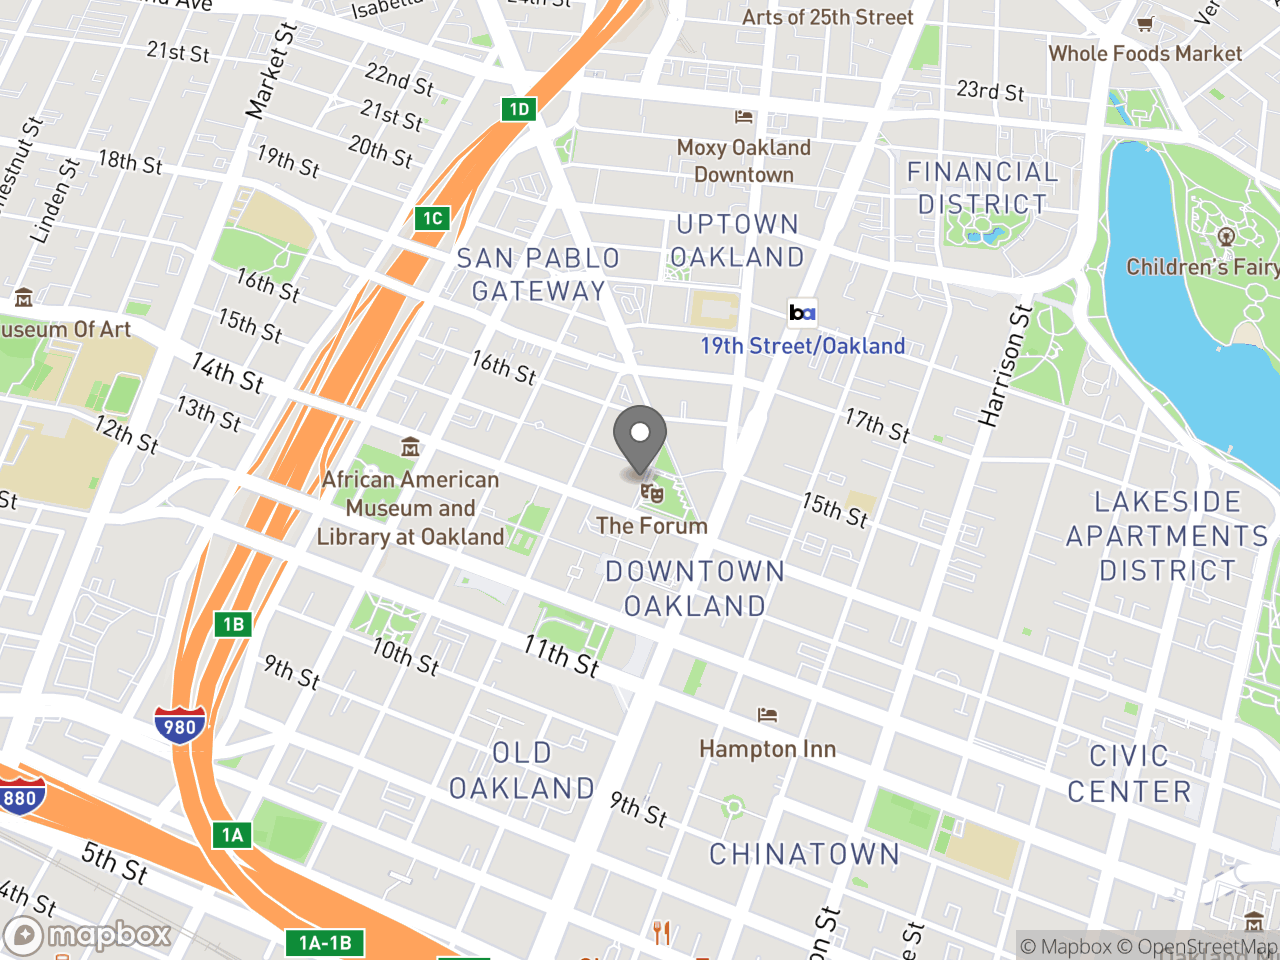 Map location for Police Commission November 8, 2018, located at 1 Frank H Ogawa Plaza in Oakland, CA 94612